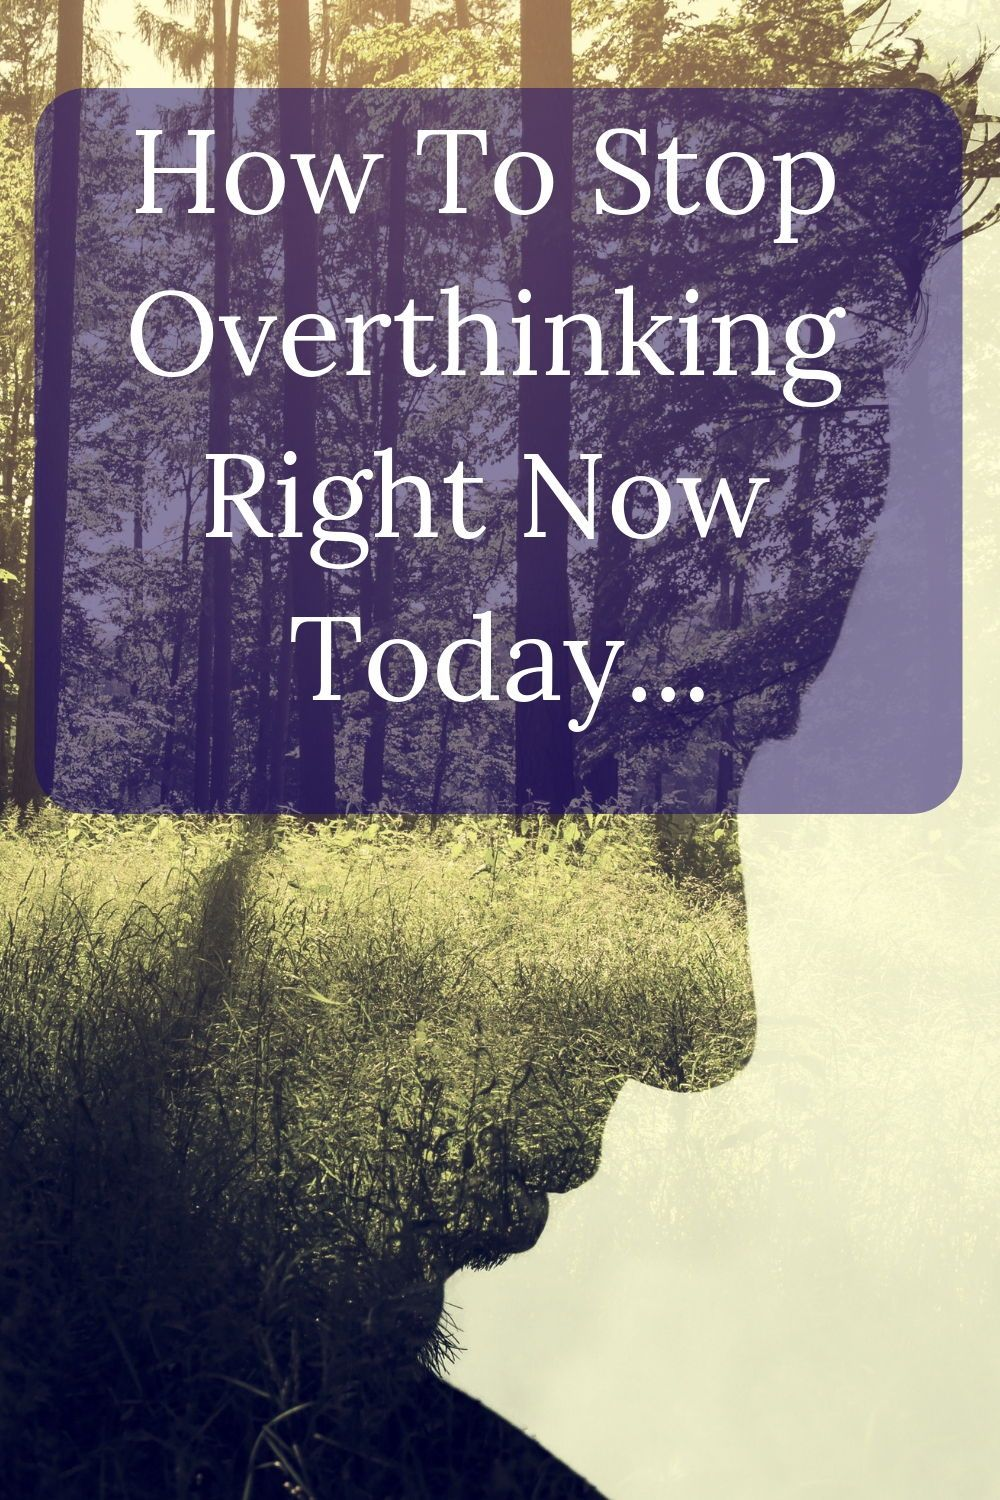 How To Stop Overthinking (With images) | Overthinking ...